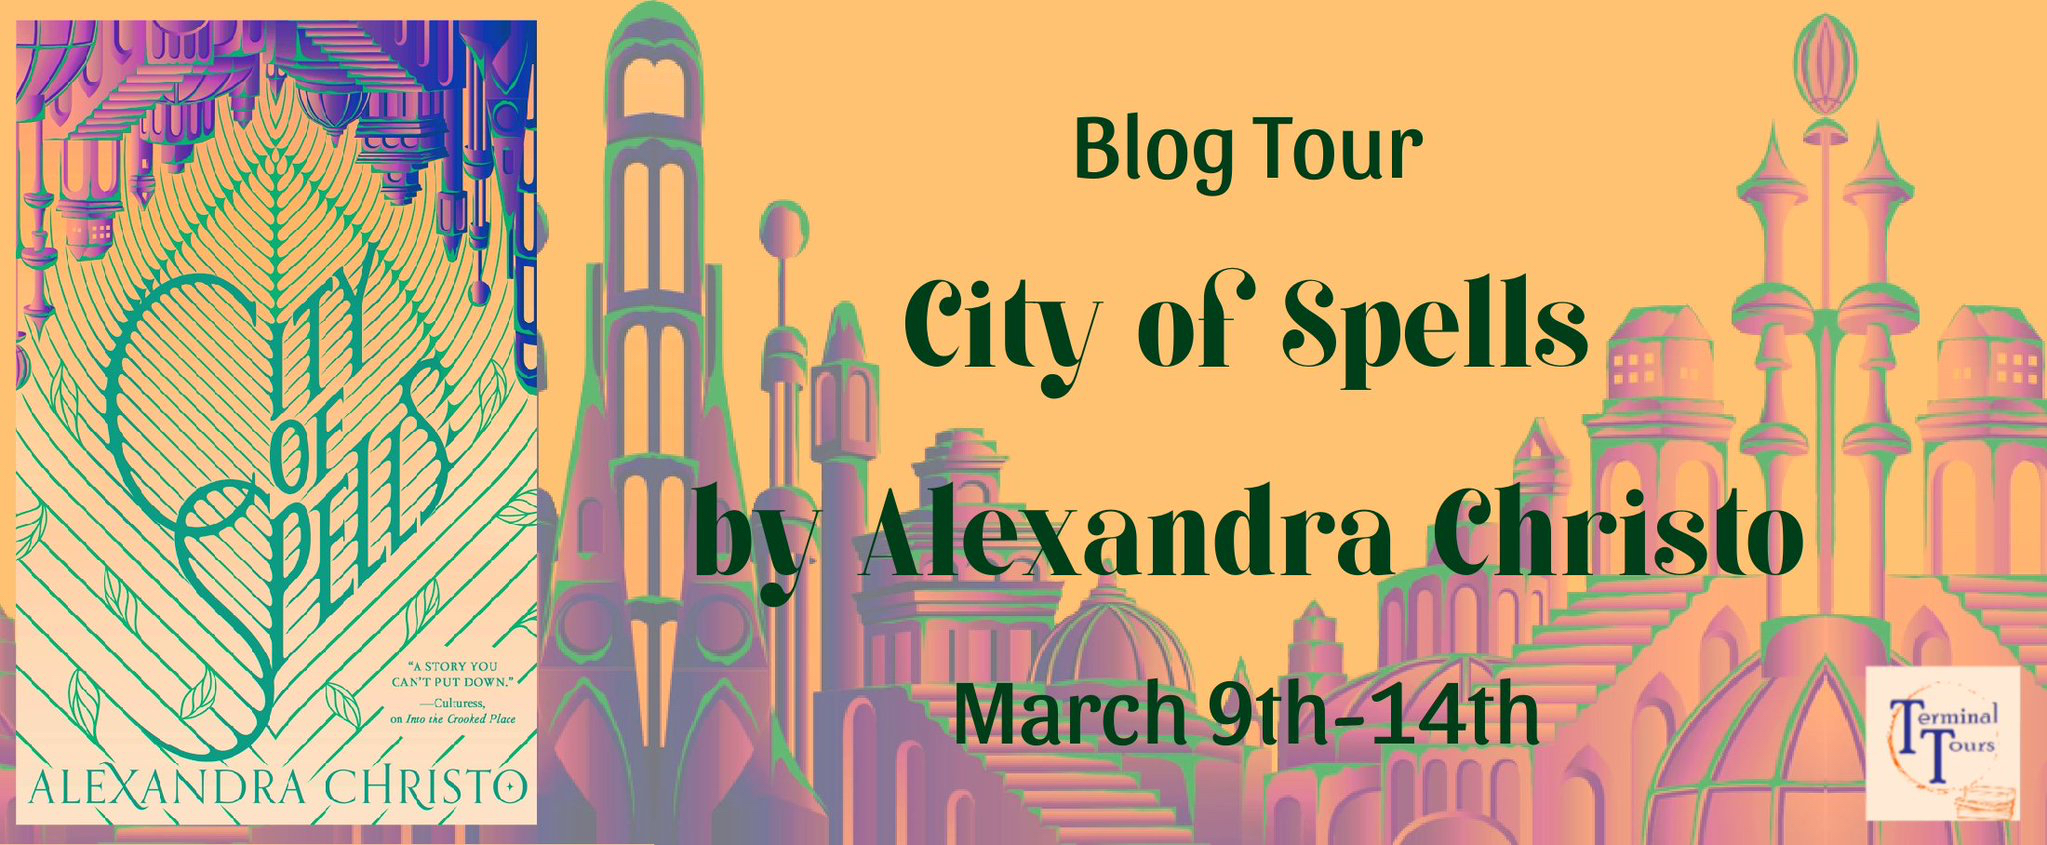 Blog Tour: City of Spells by Alexandra Christo (Excerpt + Aesthetic Board + Giveaway!)